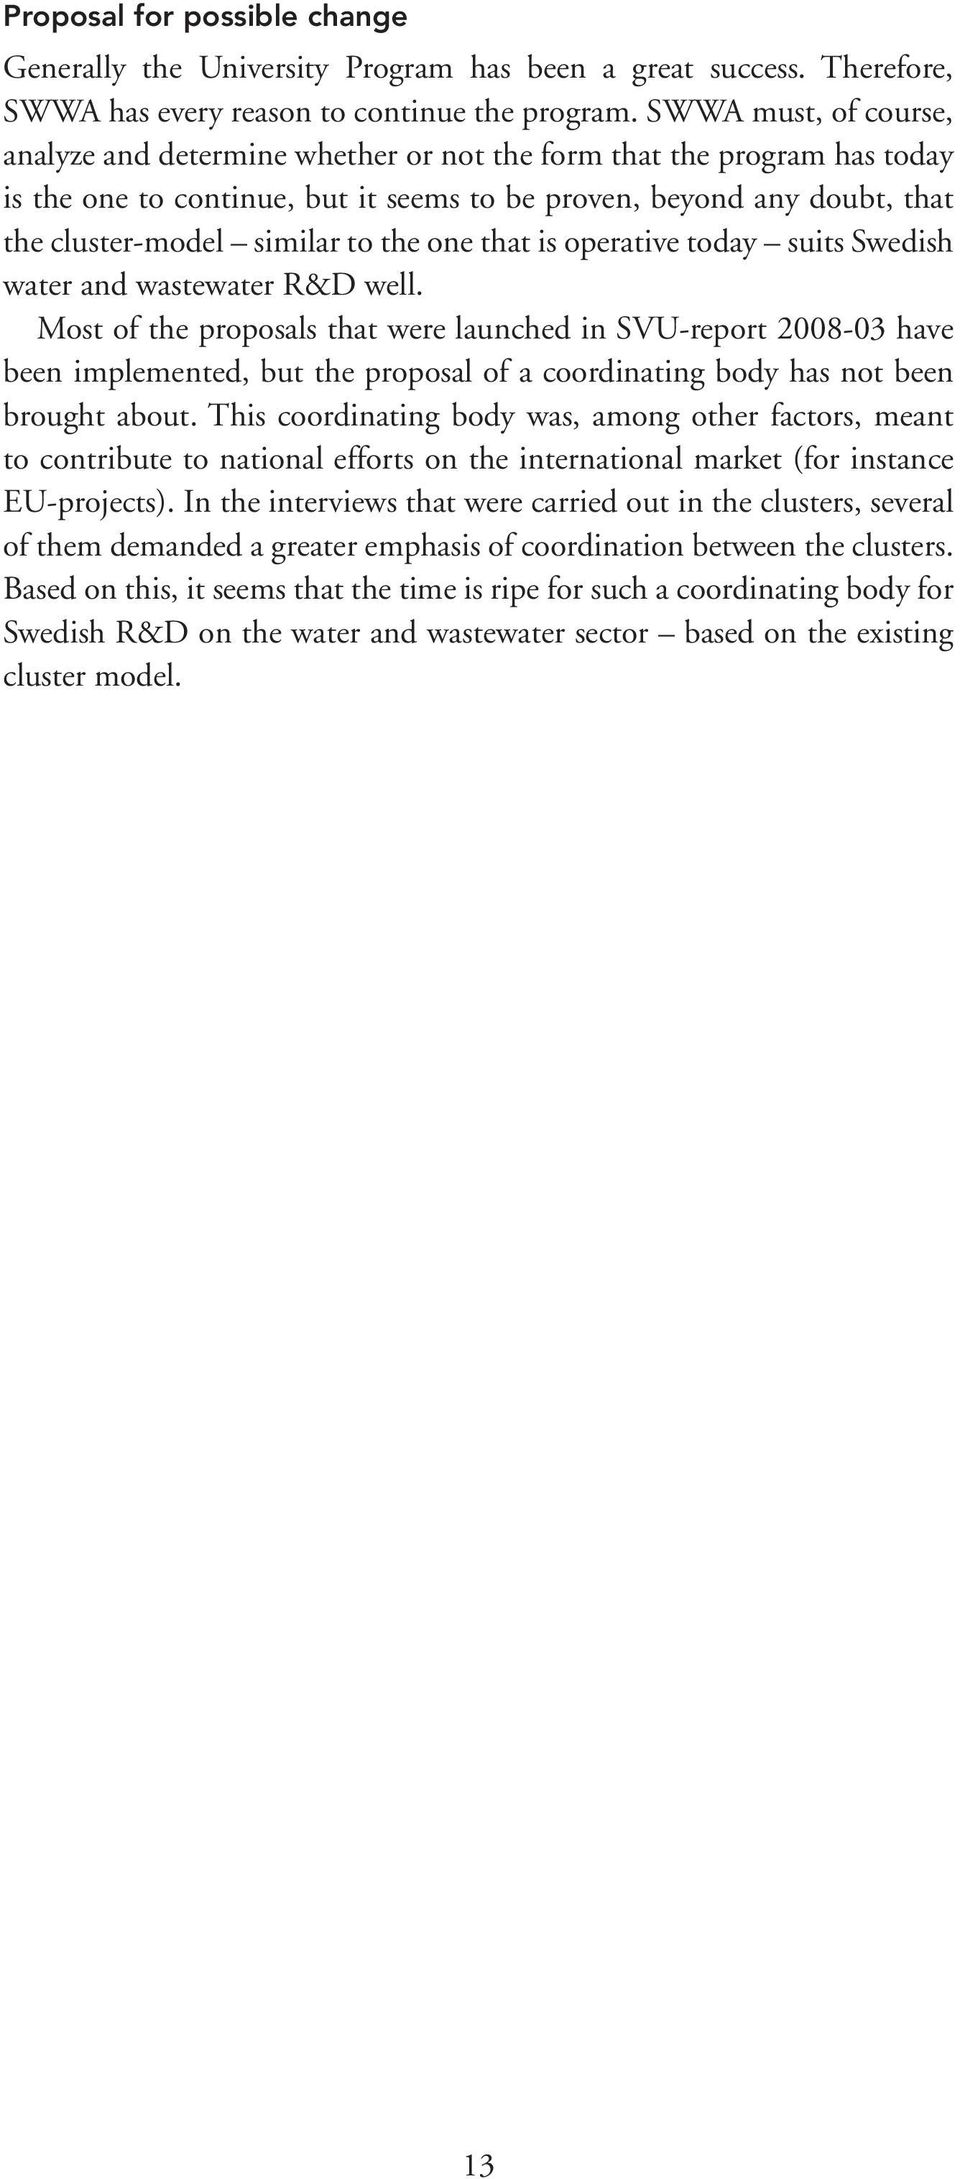 the one that is operative today suits Swedish water and wastewater R&D well.